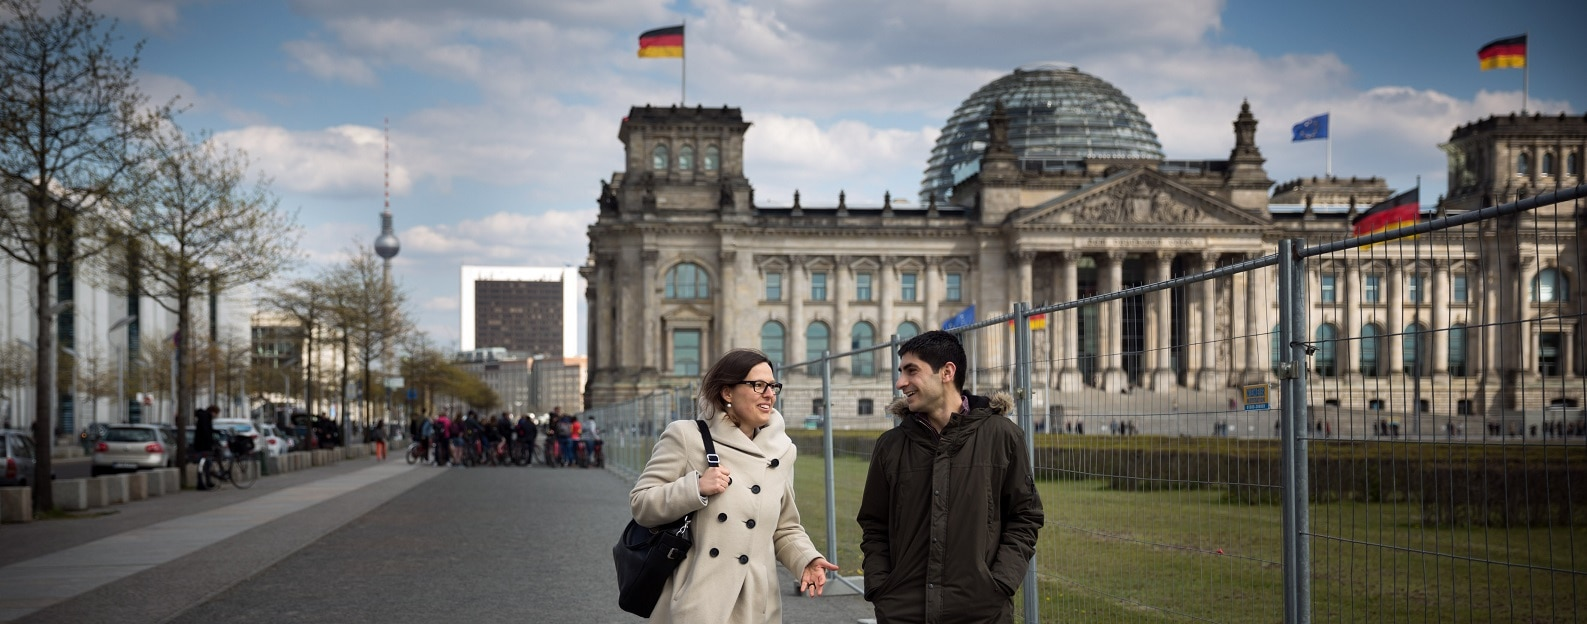 Germany. Volunteer initiative matches asylum seekers with local Germans